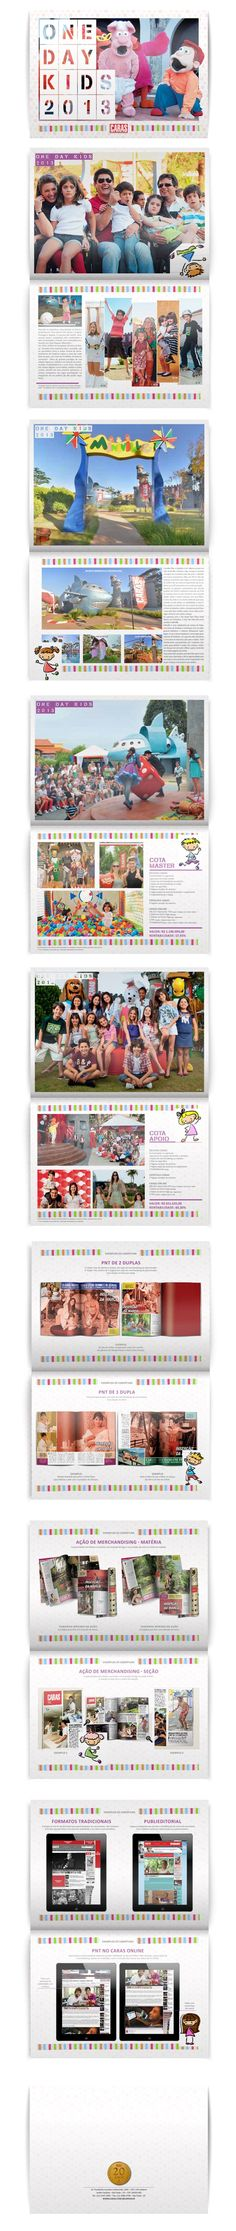 _One Day Kids 2013